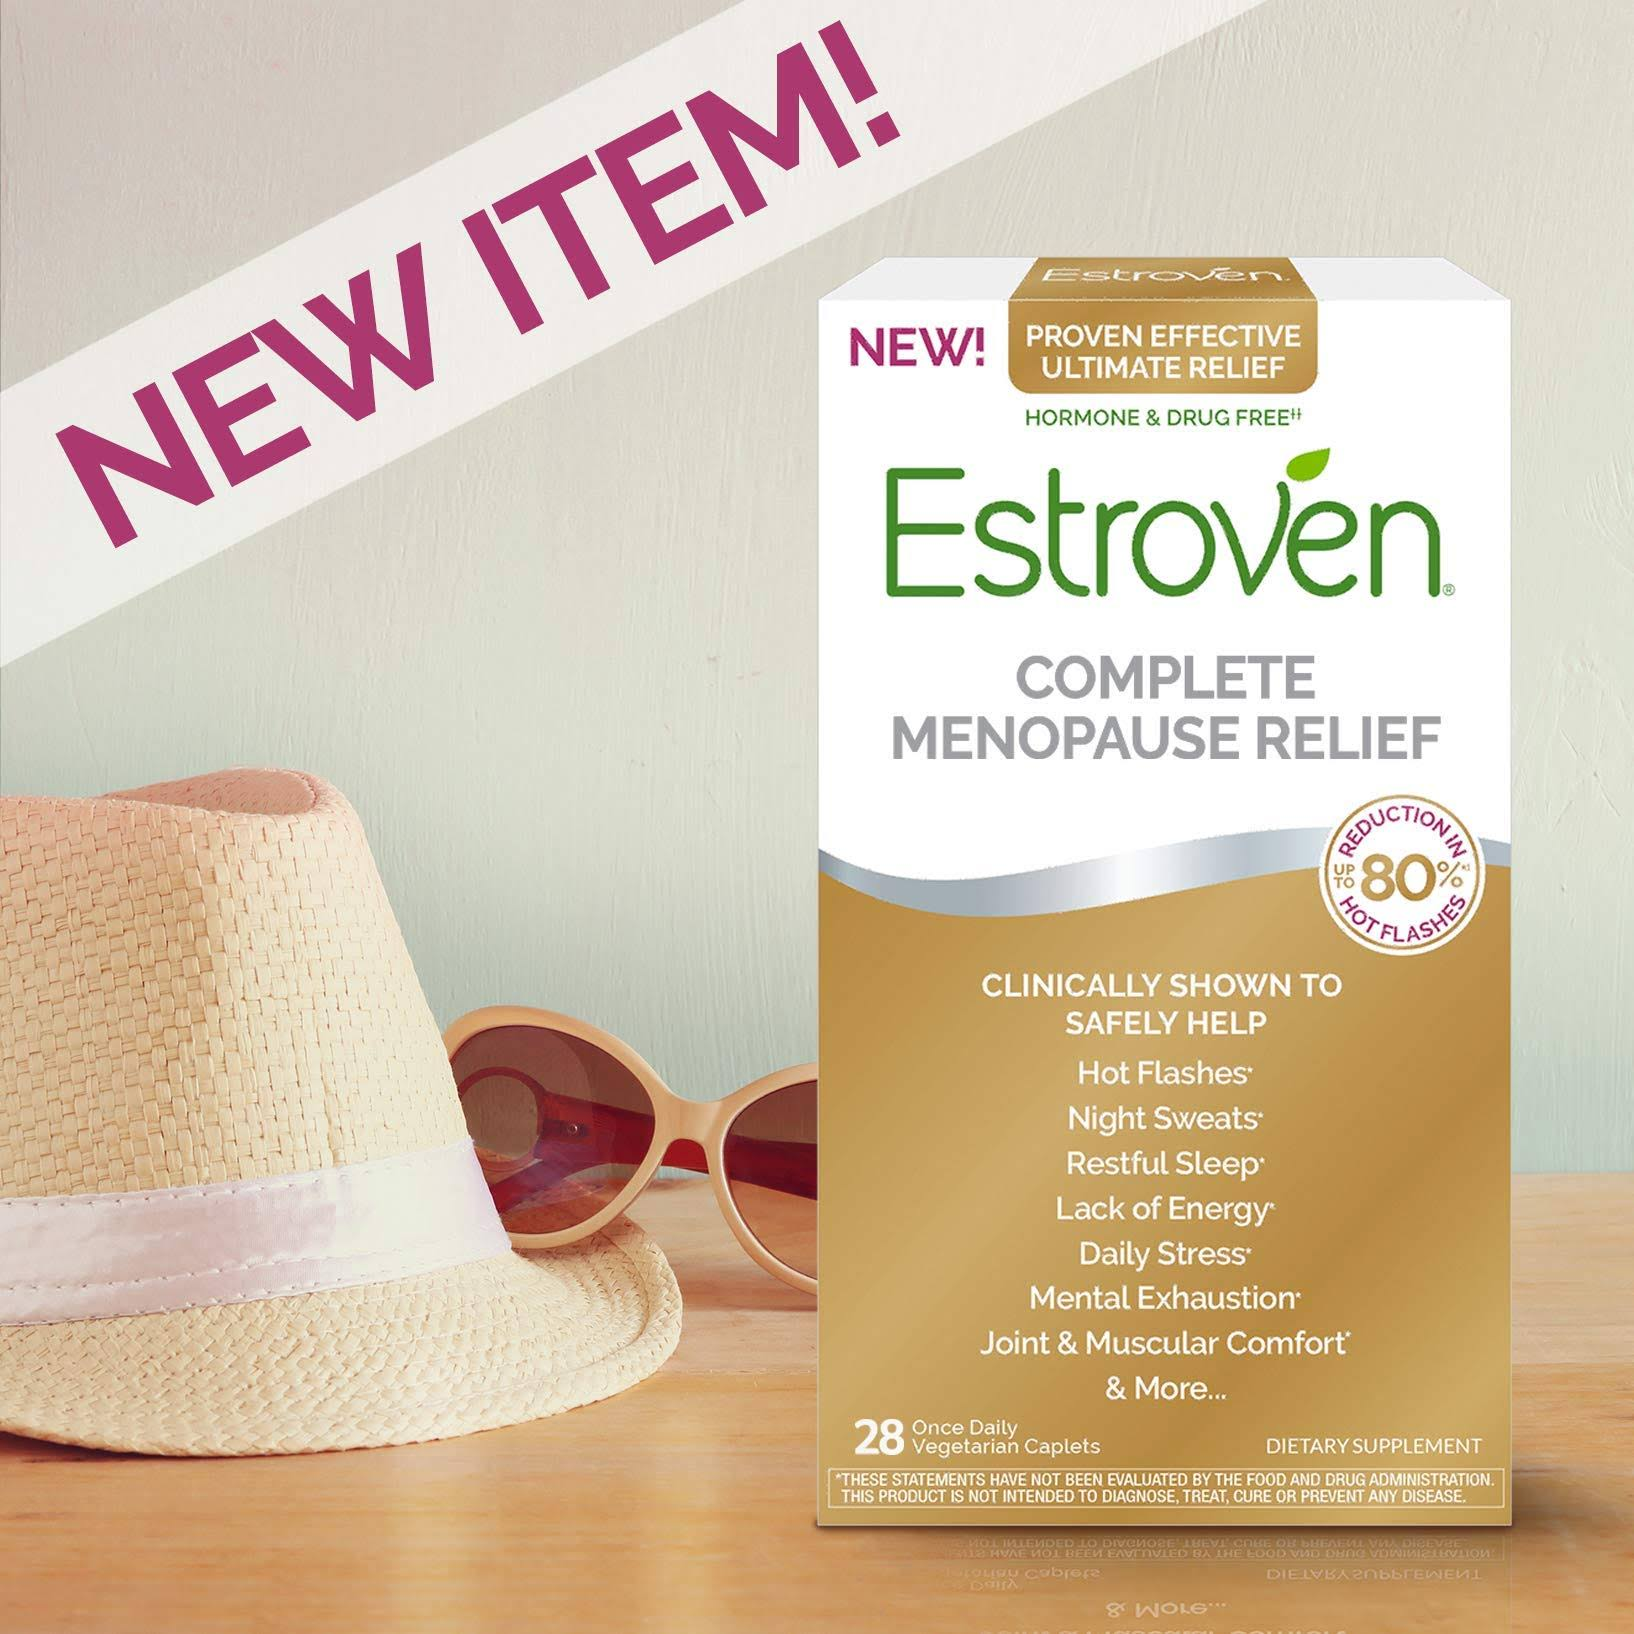 Estroven Complete Menopause Relief Dietary Supplement - 28ct